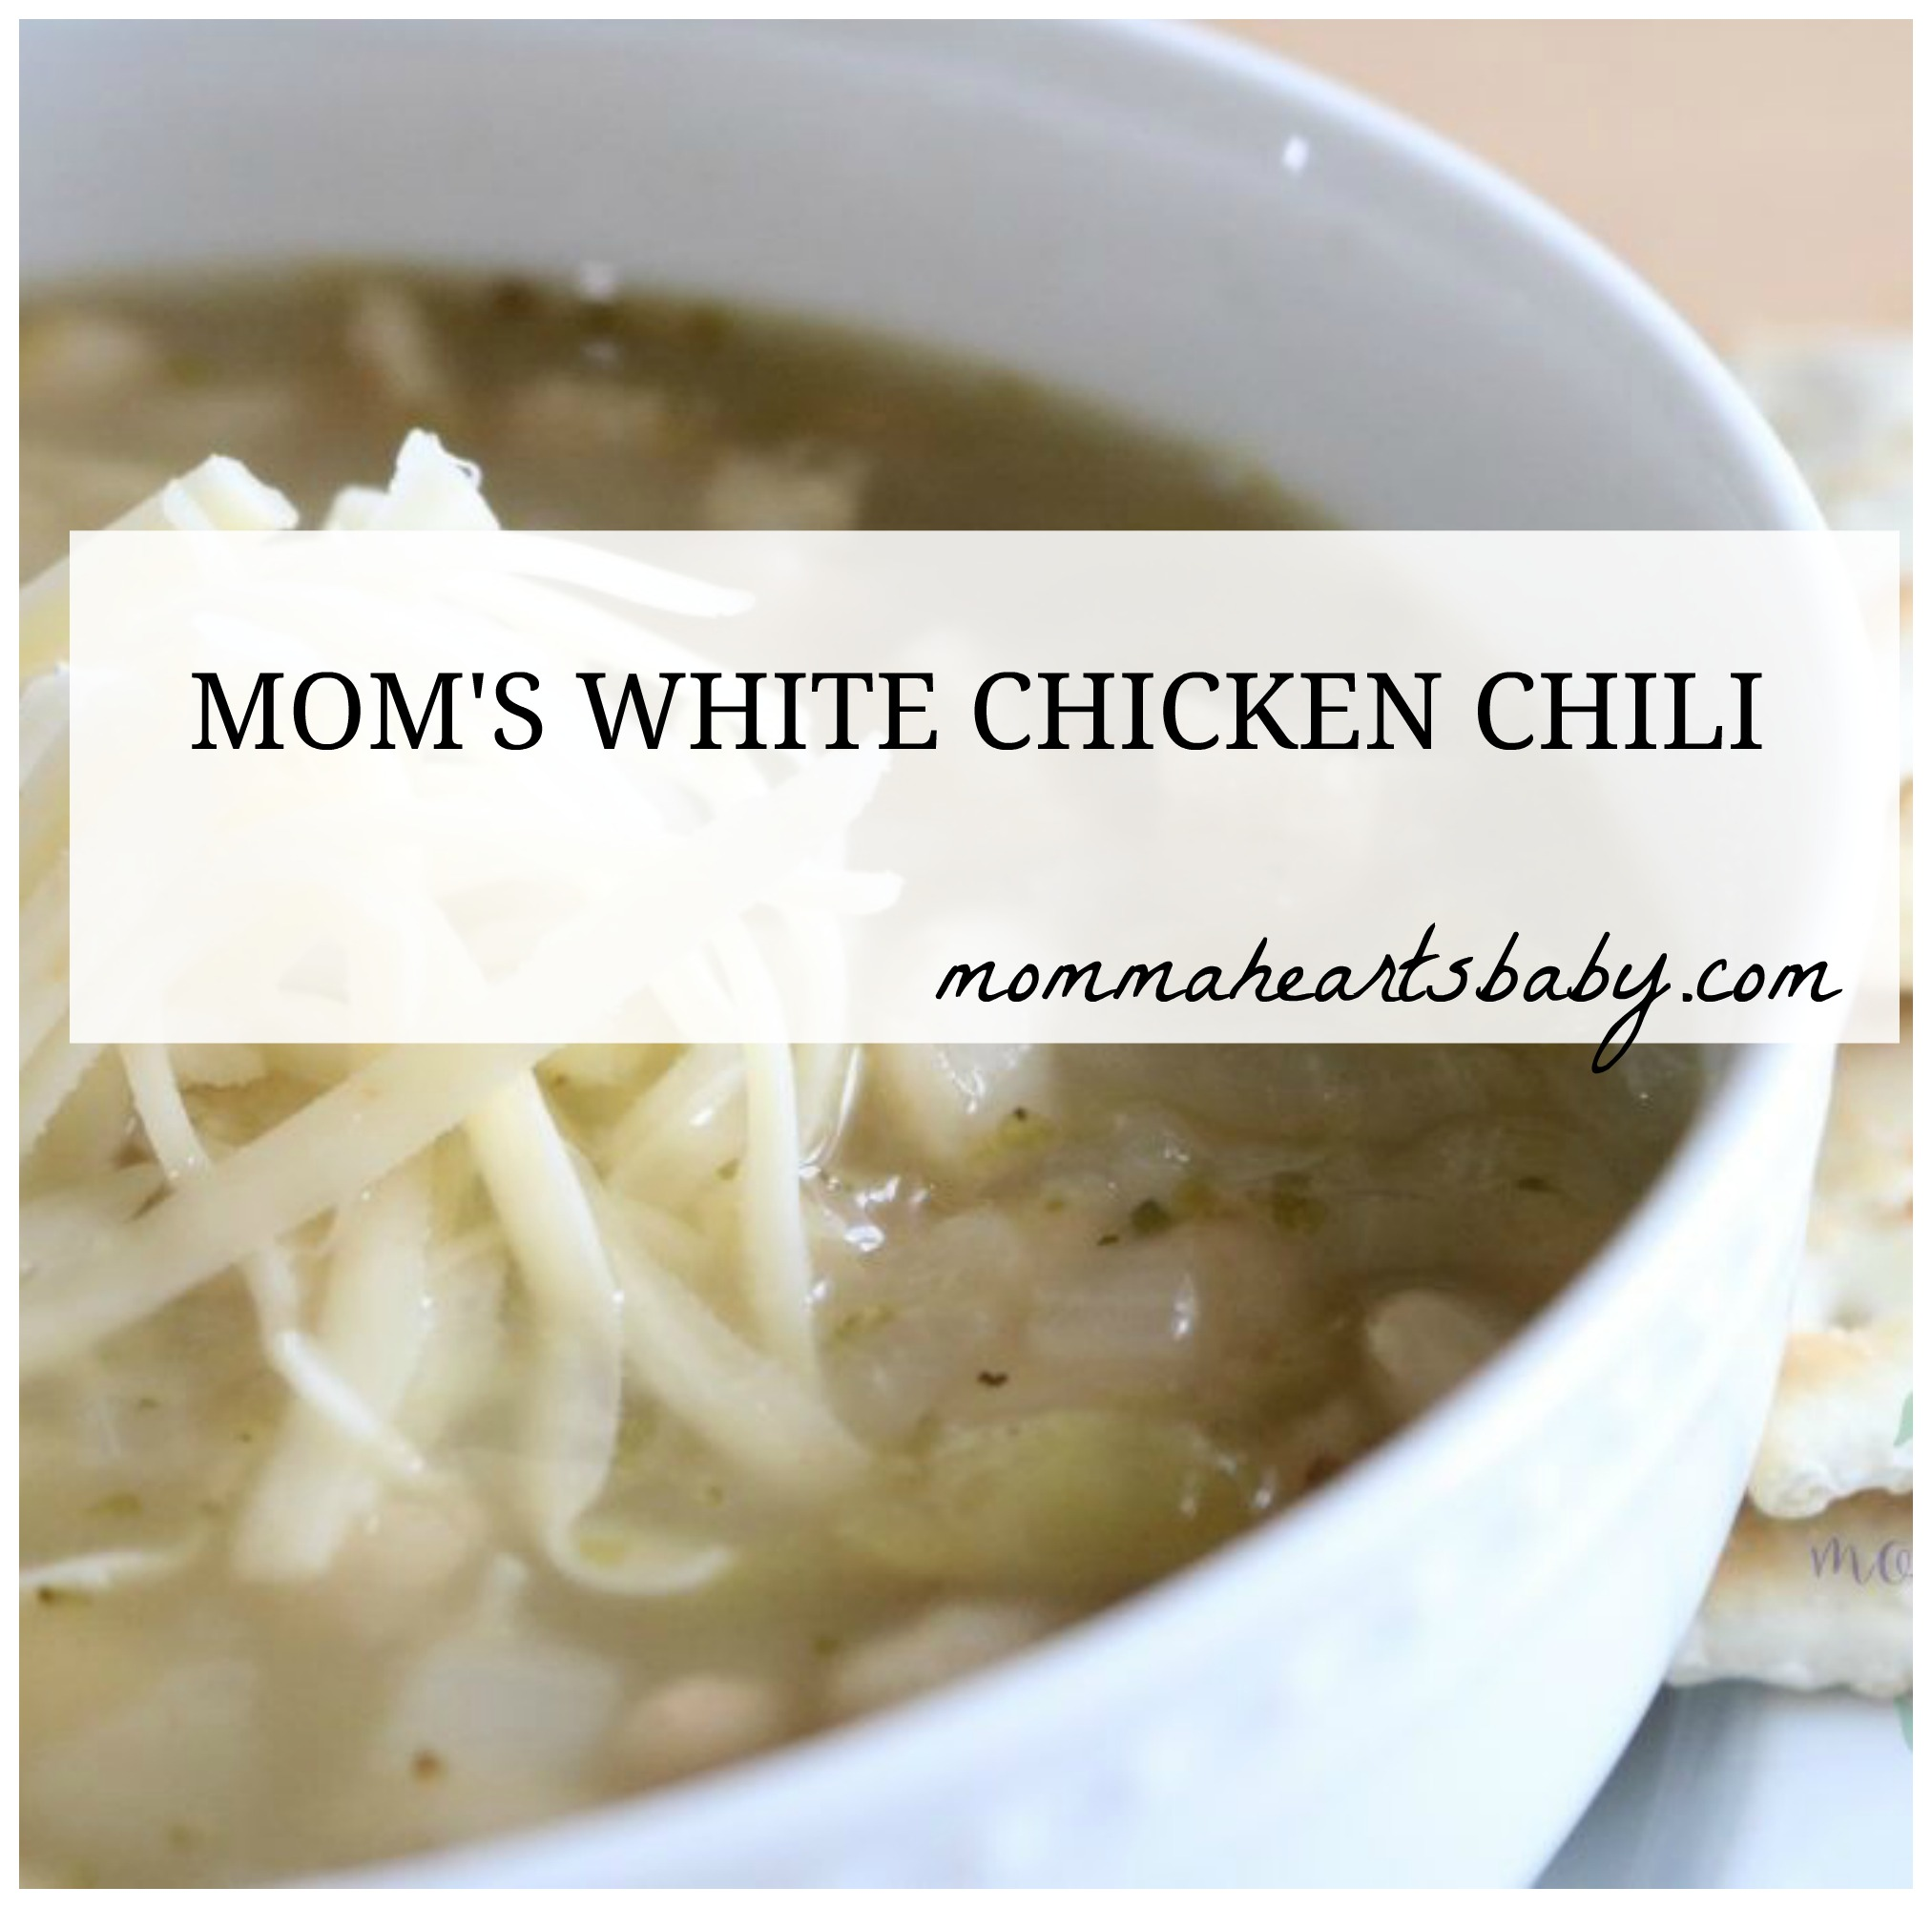 mom's white chicken chili